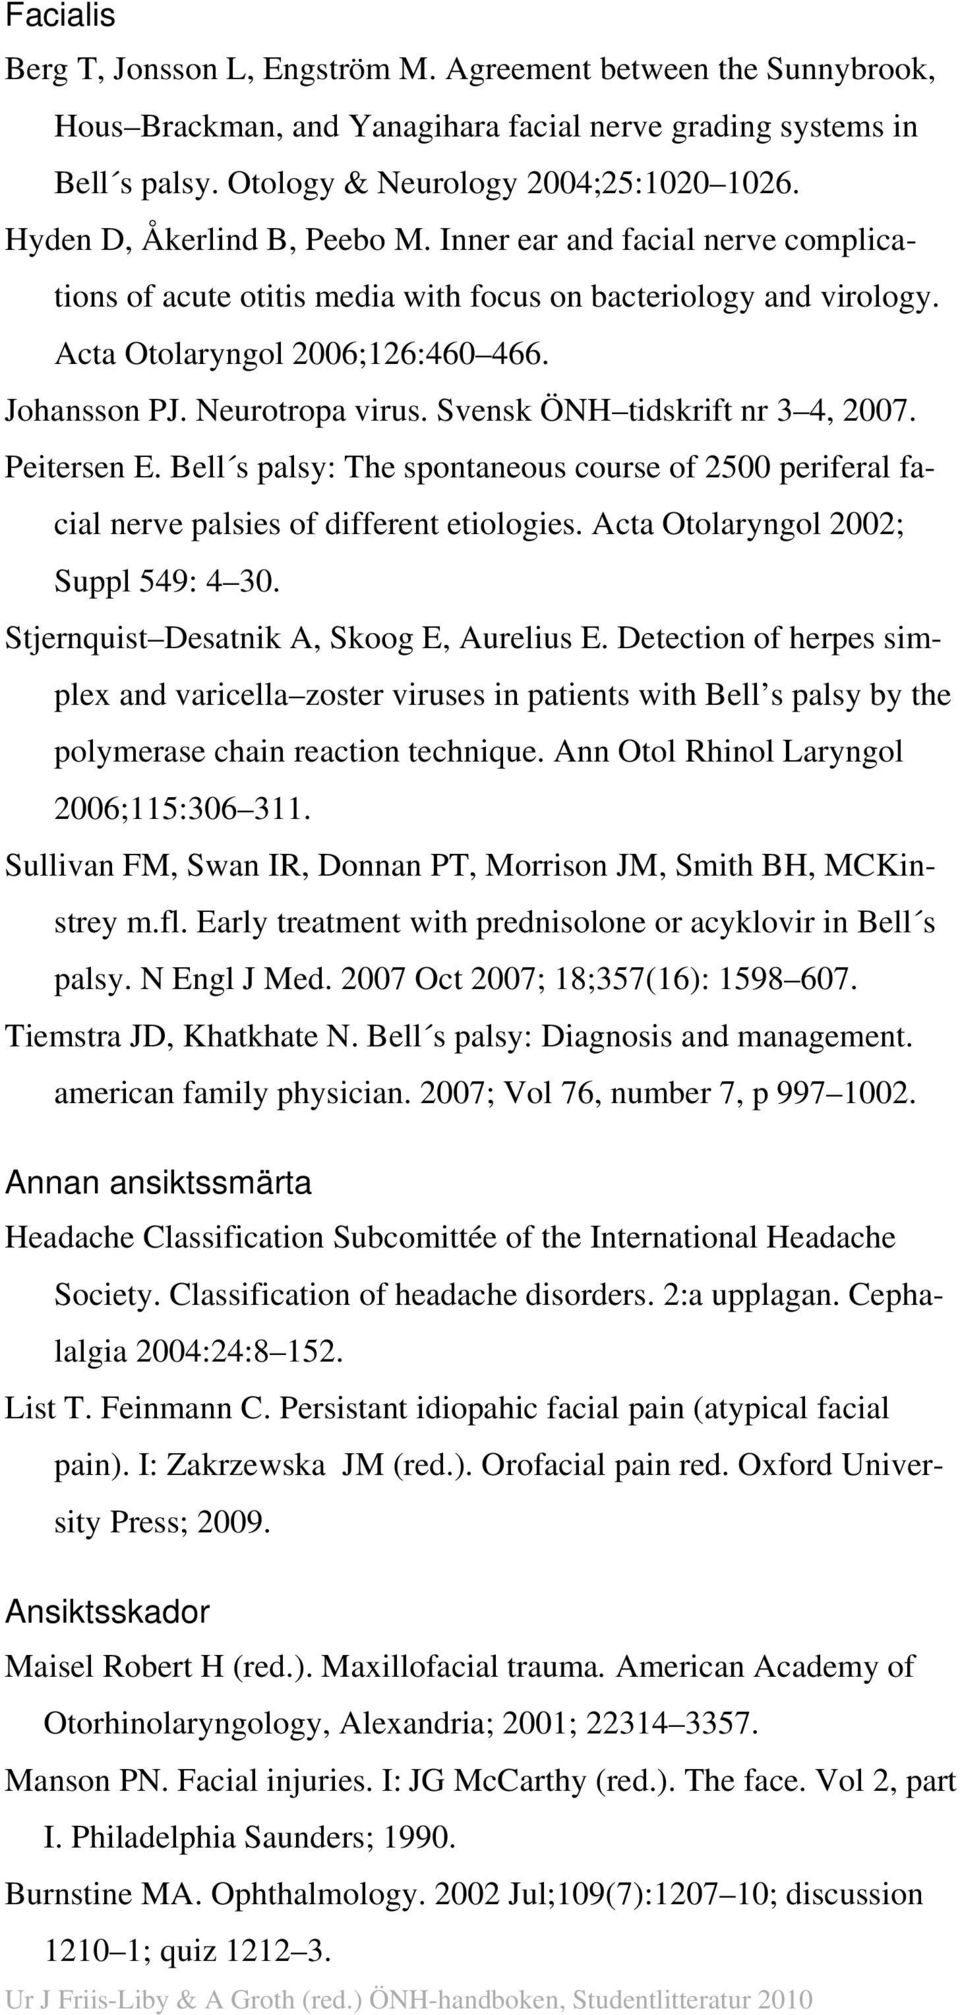 Svensk ÖNH tidskrift nr 3 4, 2007. Peitersen E. Bell s palsy: The spontaneous course of 2500 periferal facial nerve palsies of different etiologies. Acta Otolaryngol 2002; Suppl 549: 4 30.